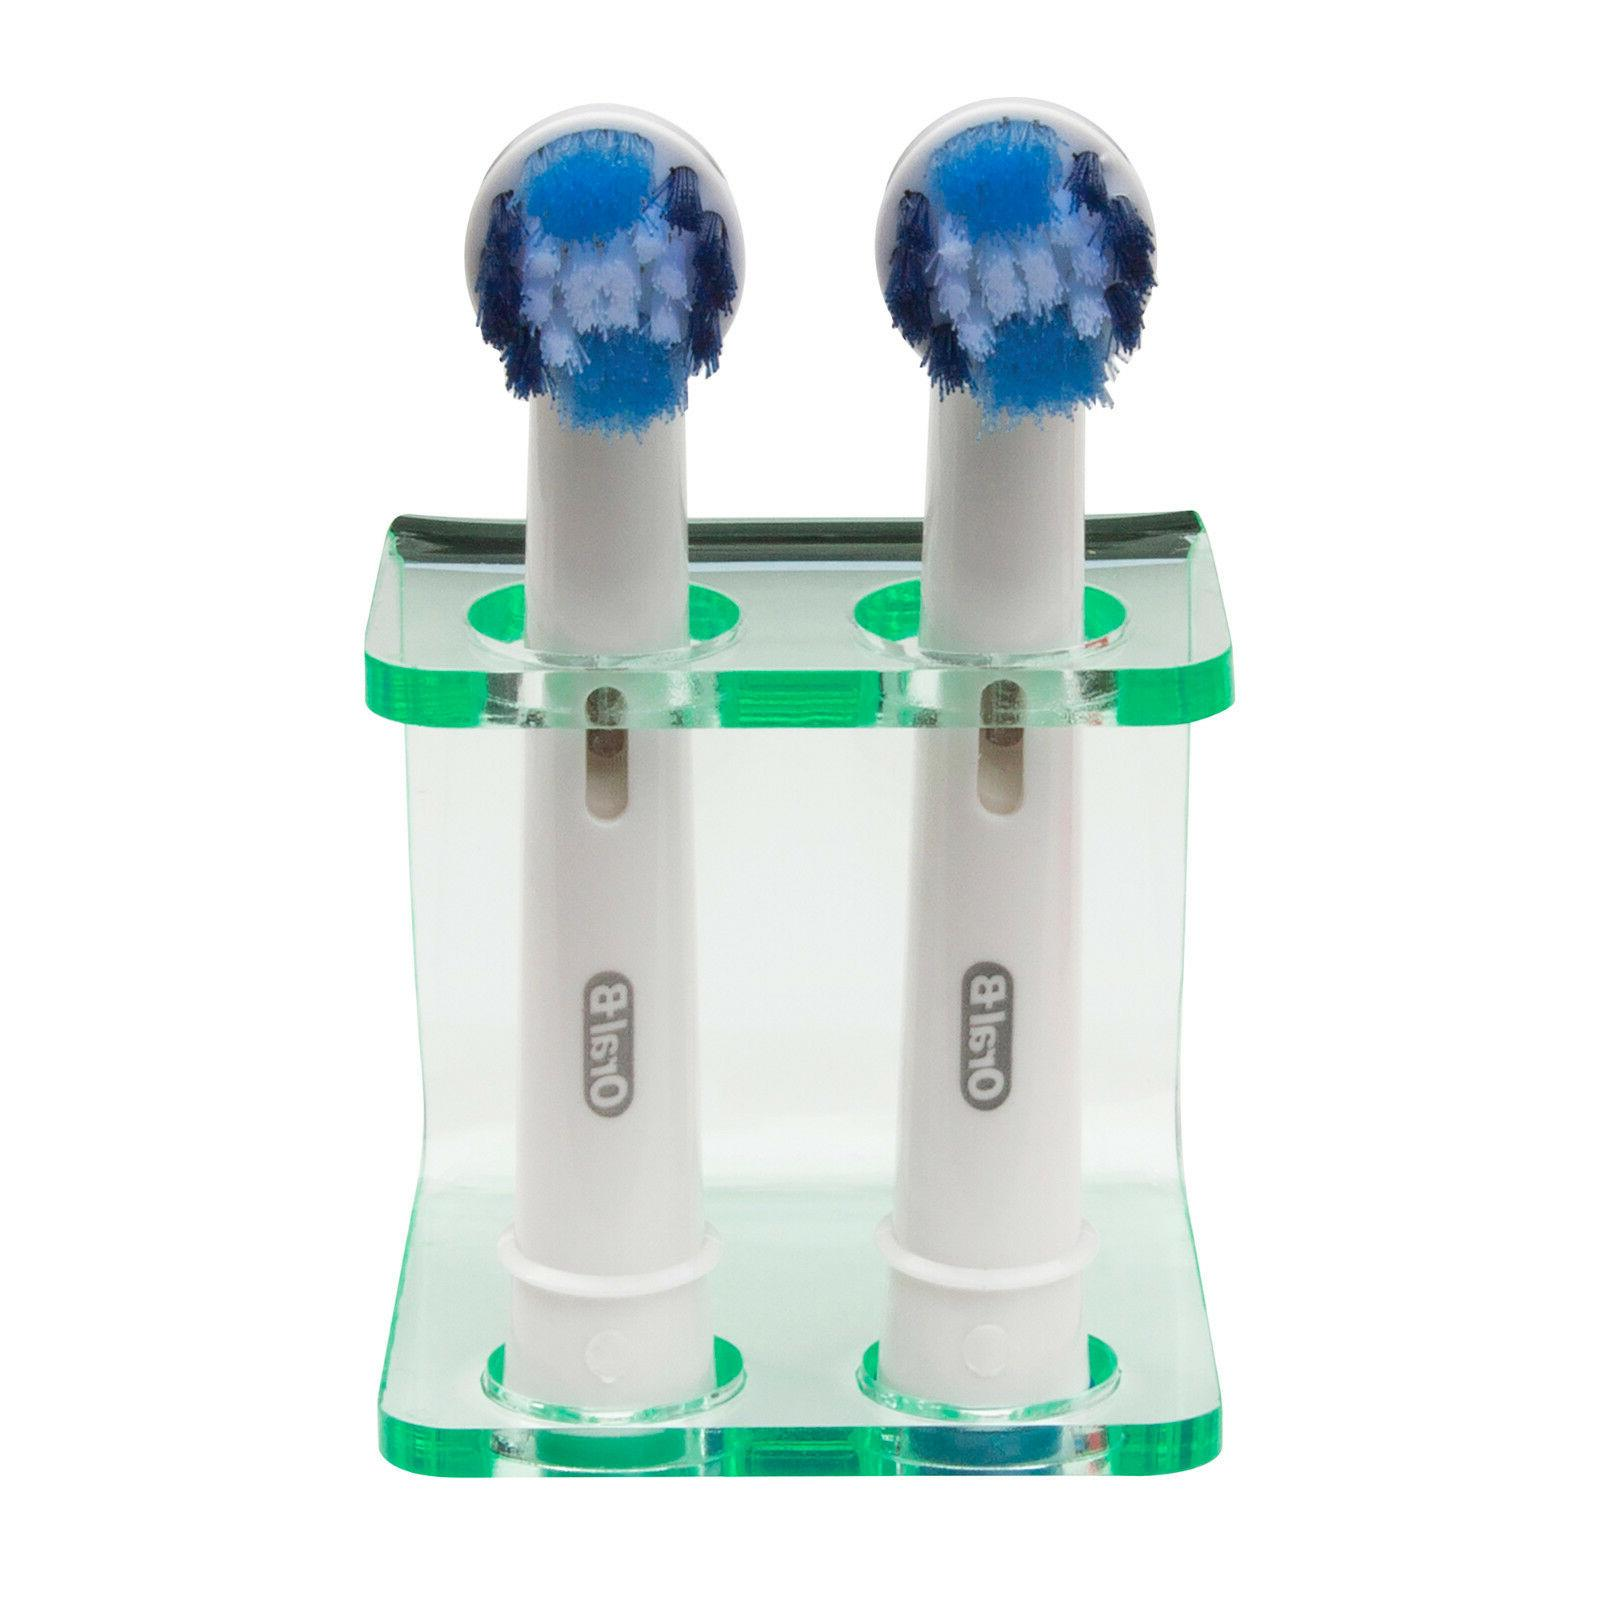 Electric Holder by Seemii, Green Effect, Oral B Heads